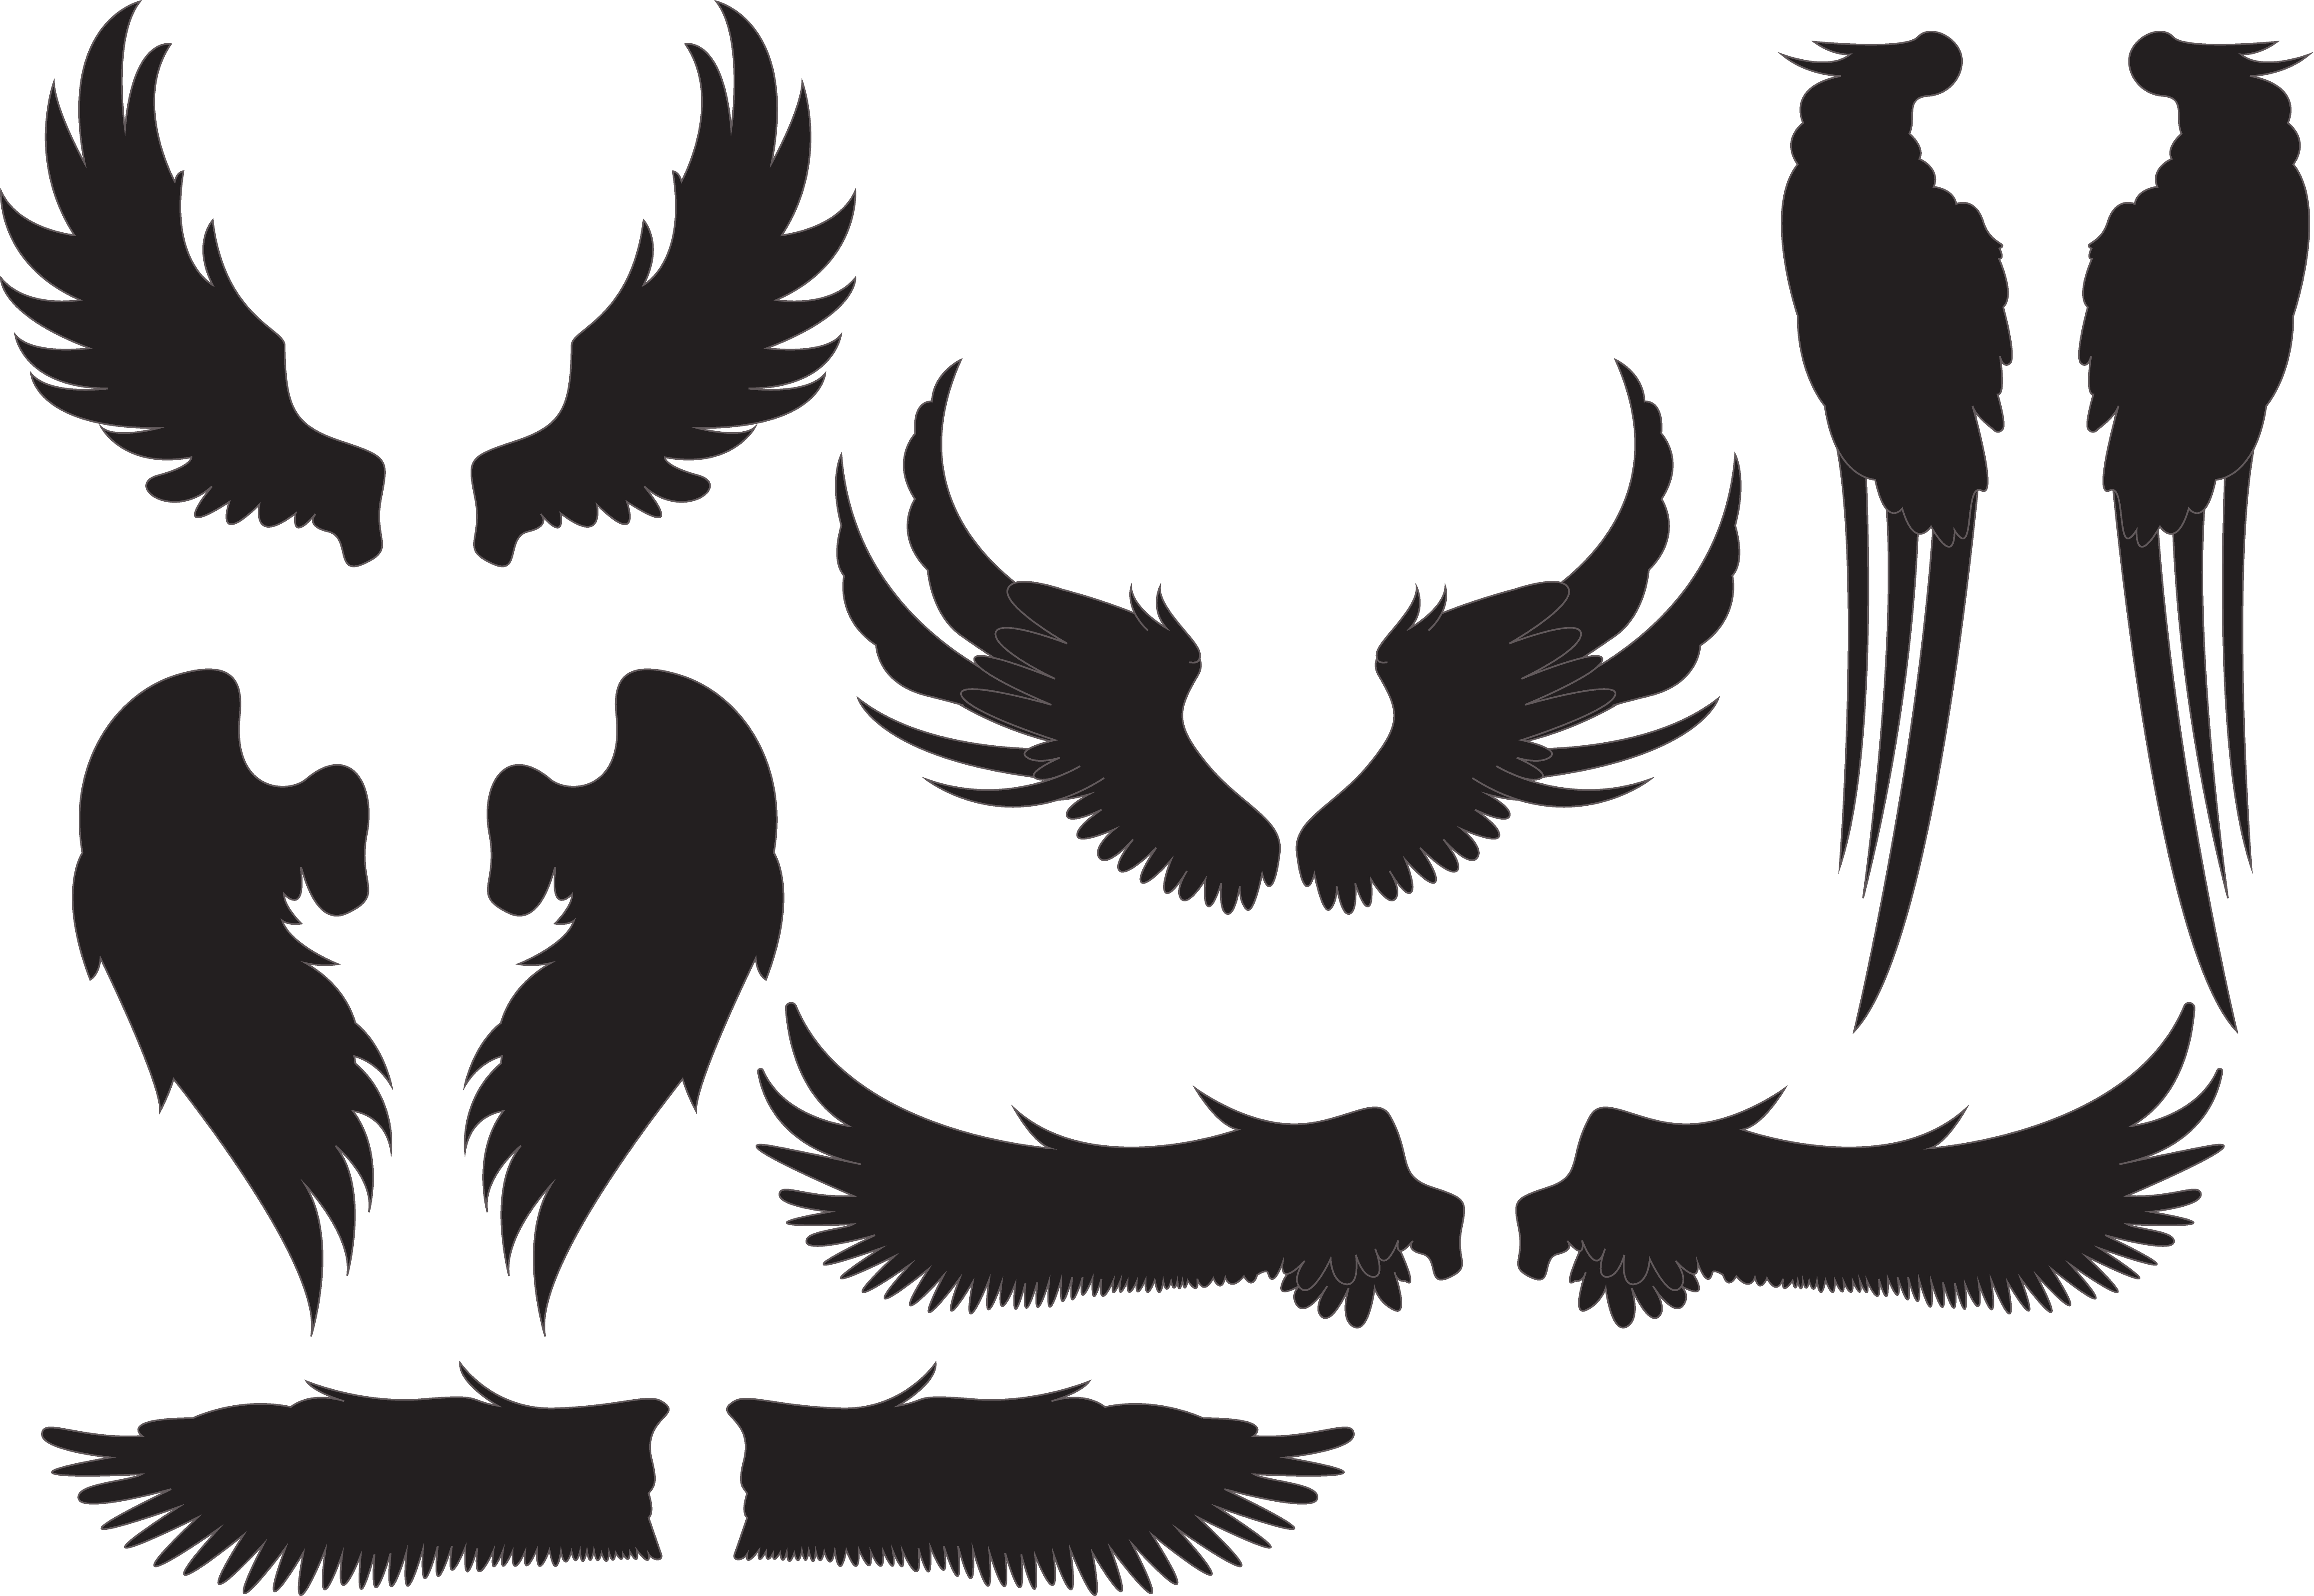 Silhouette at getdrawings com. Heaven clipart wing